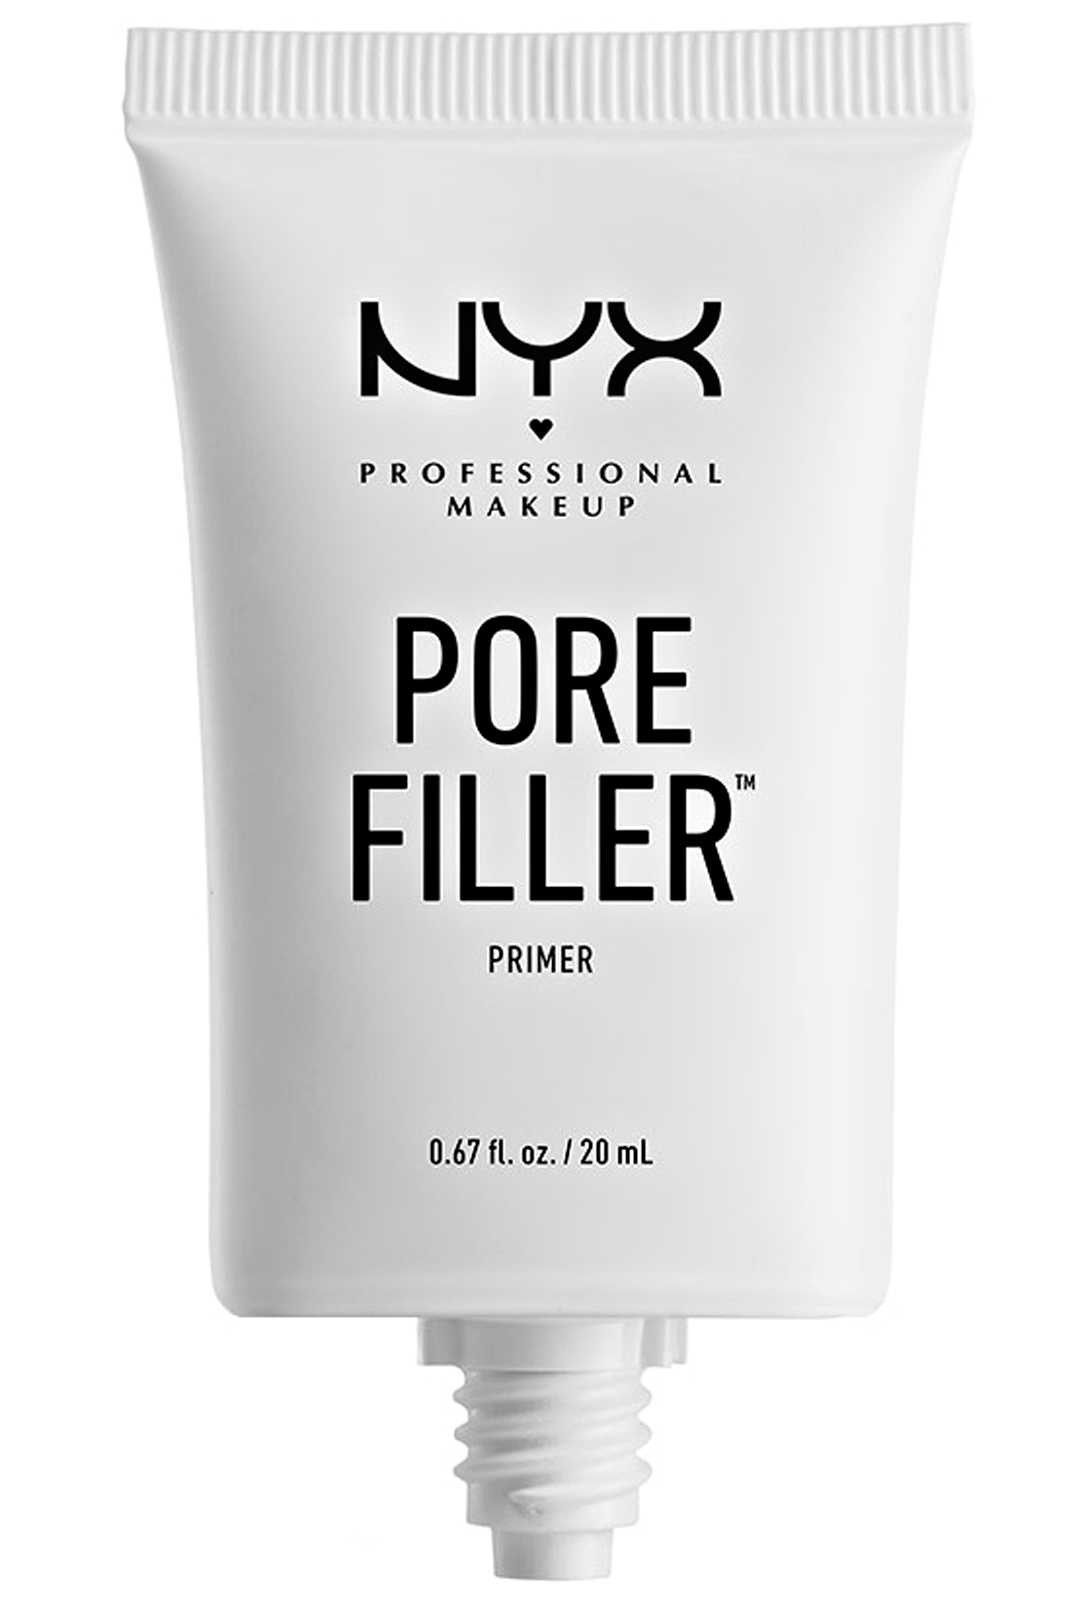 NYX Pore Filler, 15,90 €/20 ml.